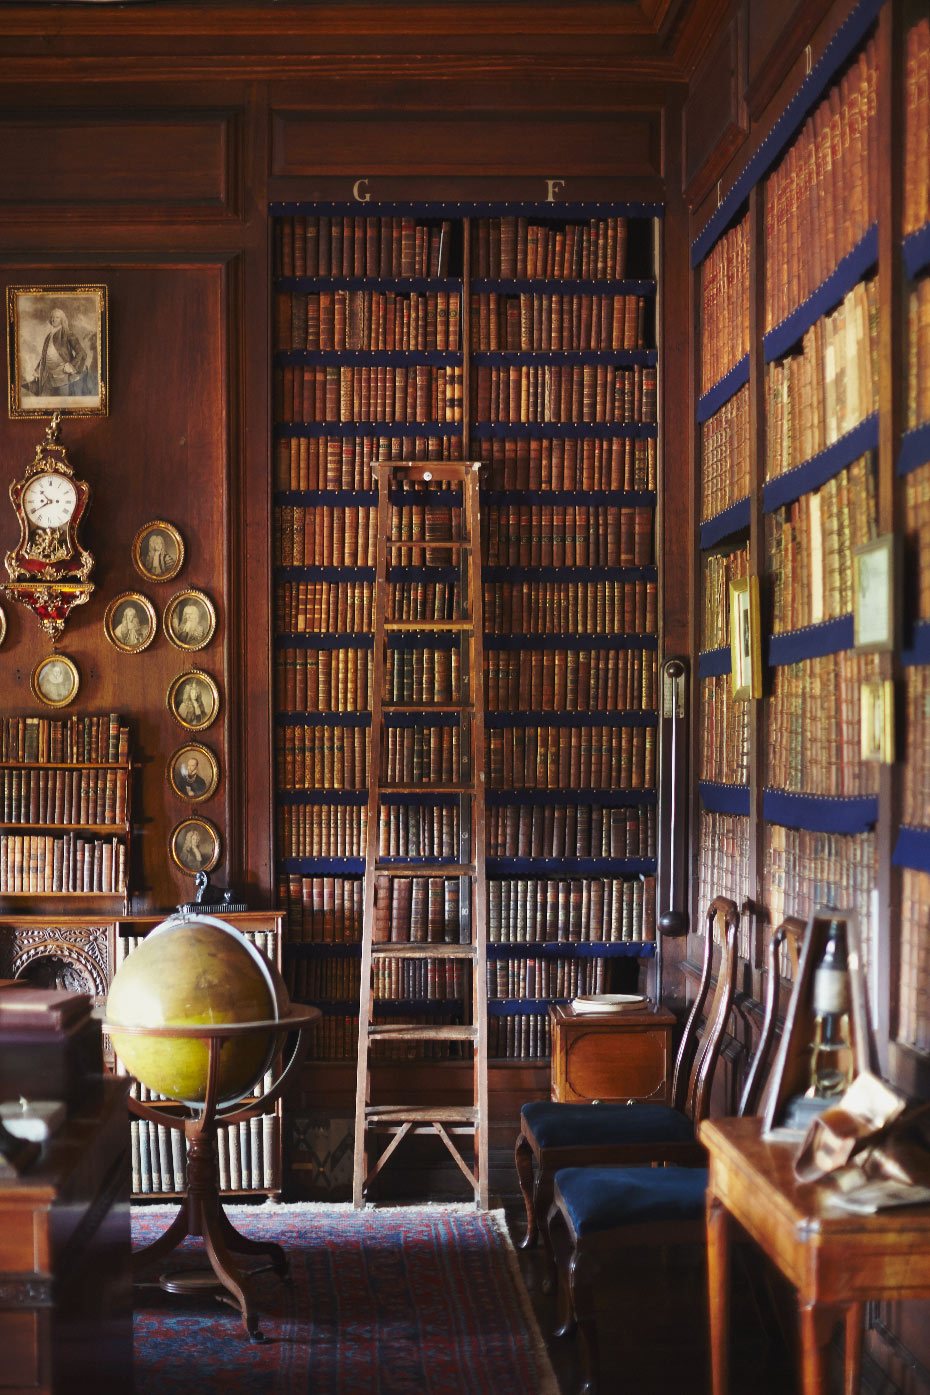 Stacey Van Berkel Photography I Beautiful library full of vintage books I Erddig Hall I Wrexham, Wales